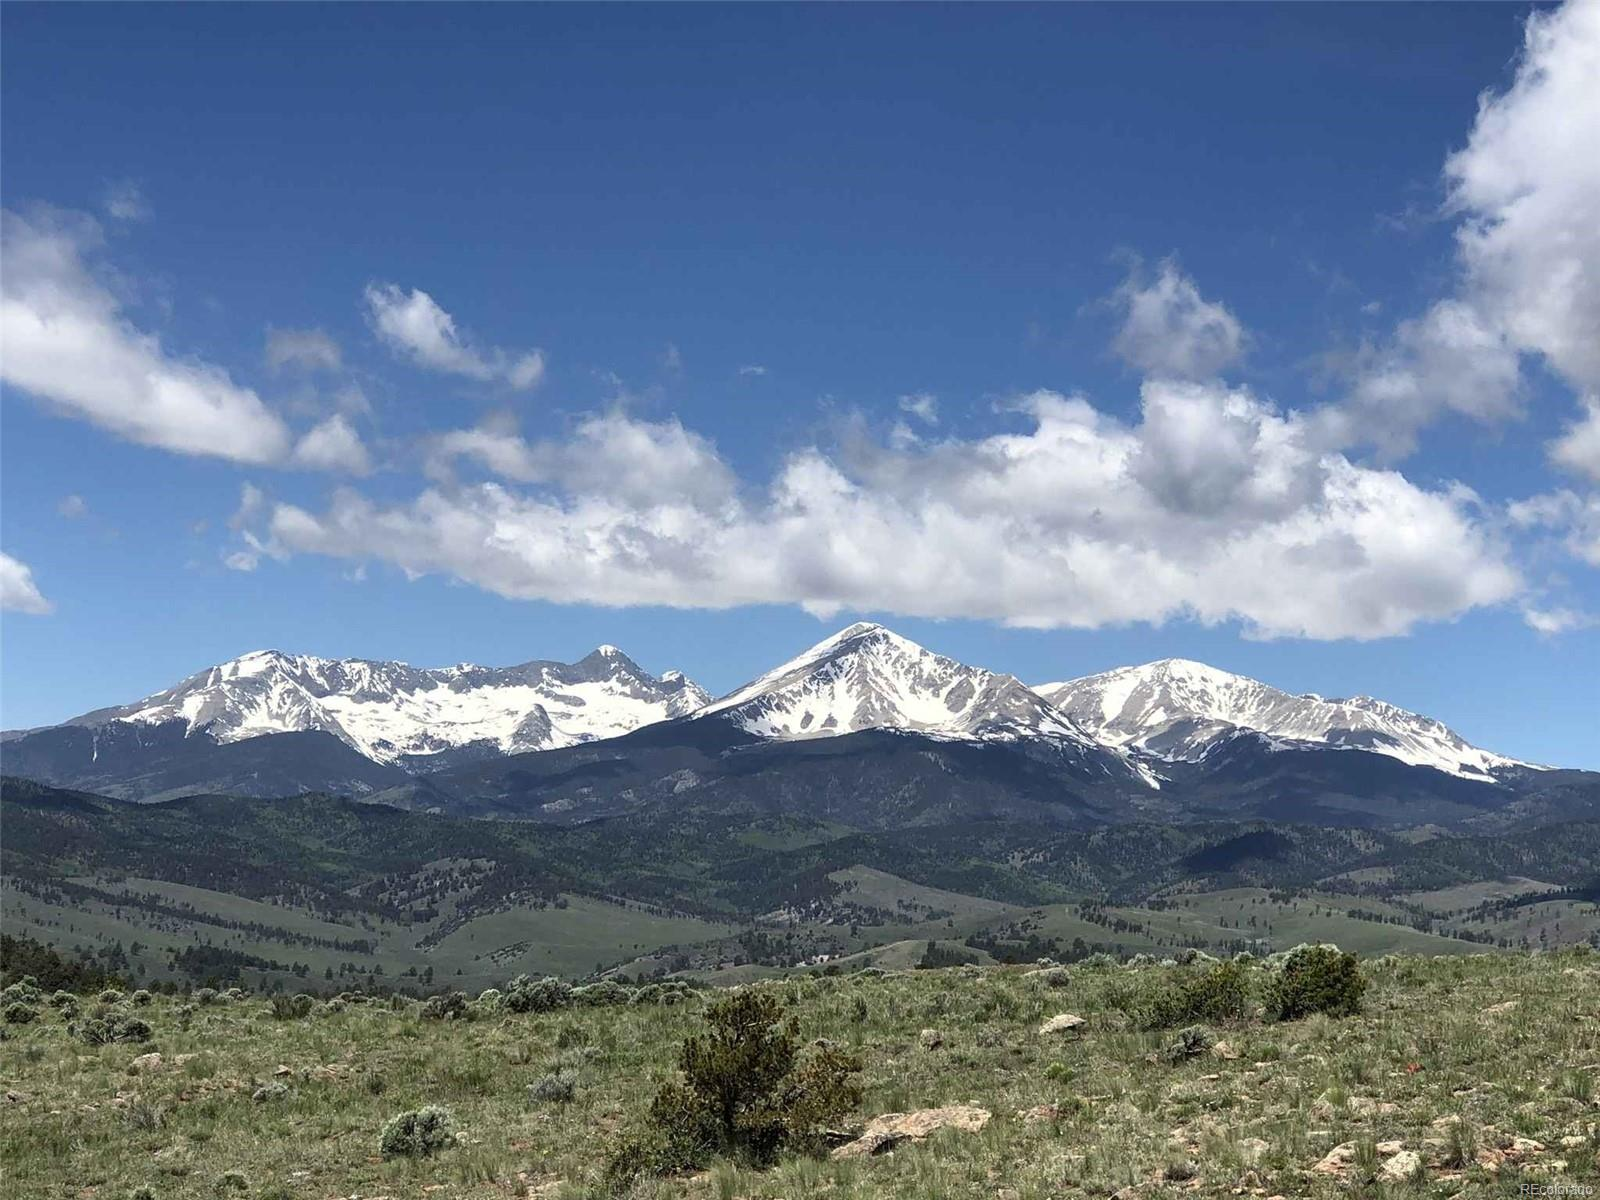 237 Boothby Lane, Fort Garland, CO 81133 - Fort Garland, CO real estate listing